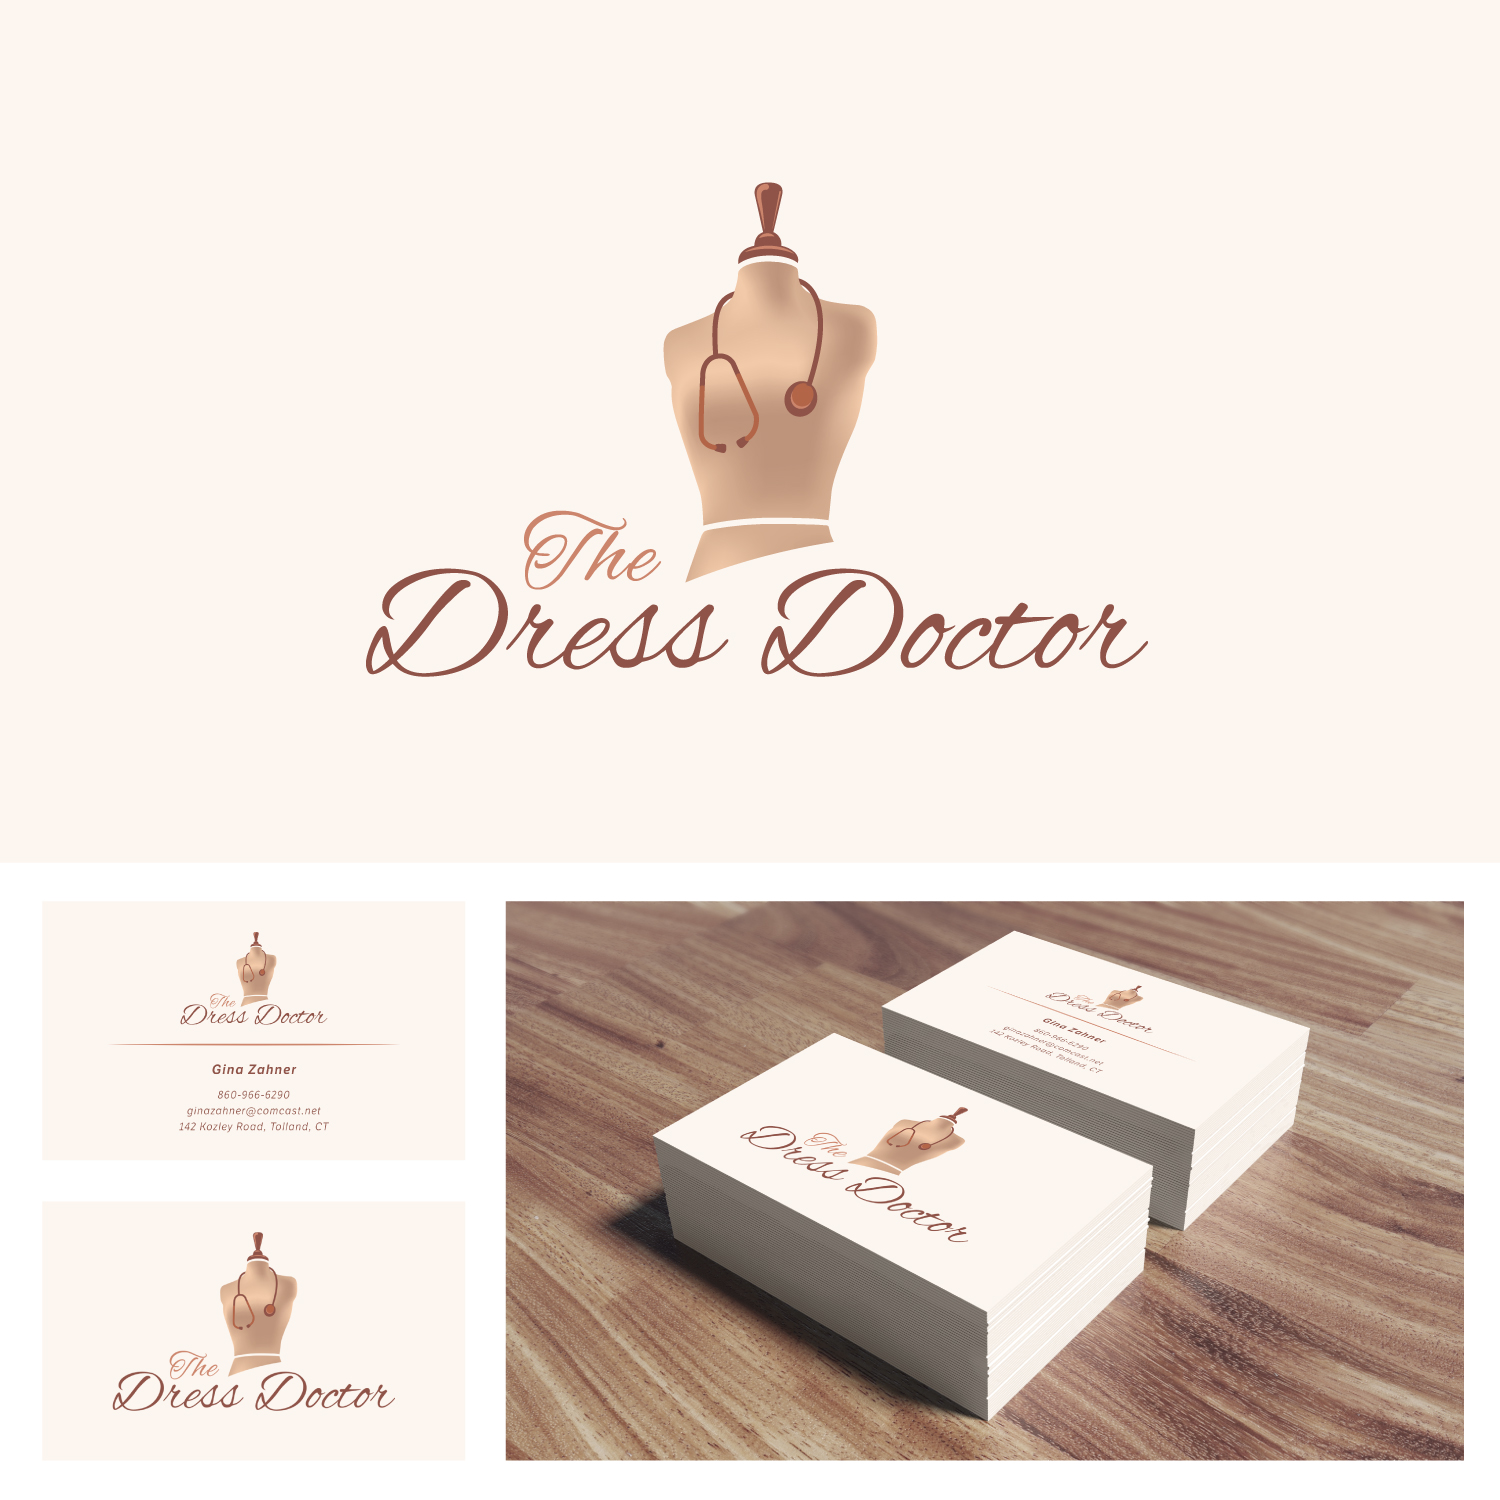 Bold modern professional service business card design for dress bold modern professional service business card design for dress doctor in united states design 10082178 reheart Gallery